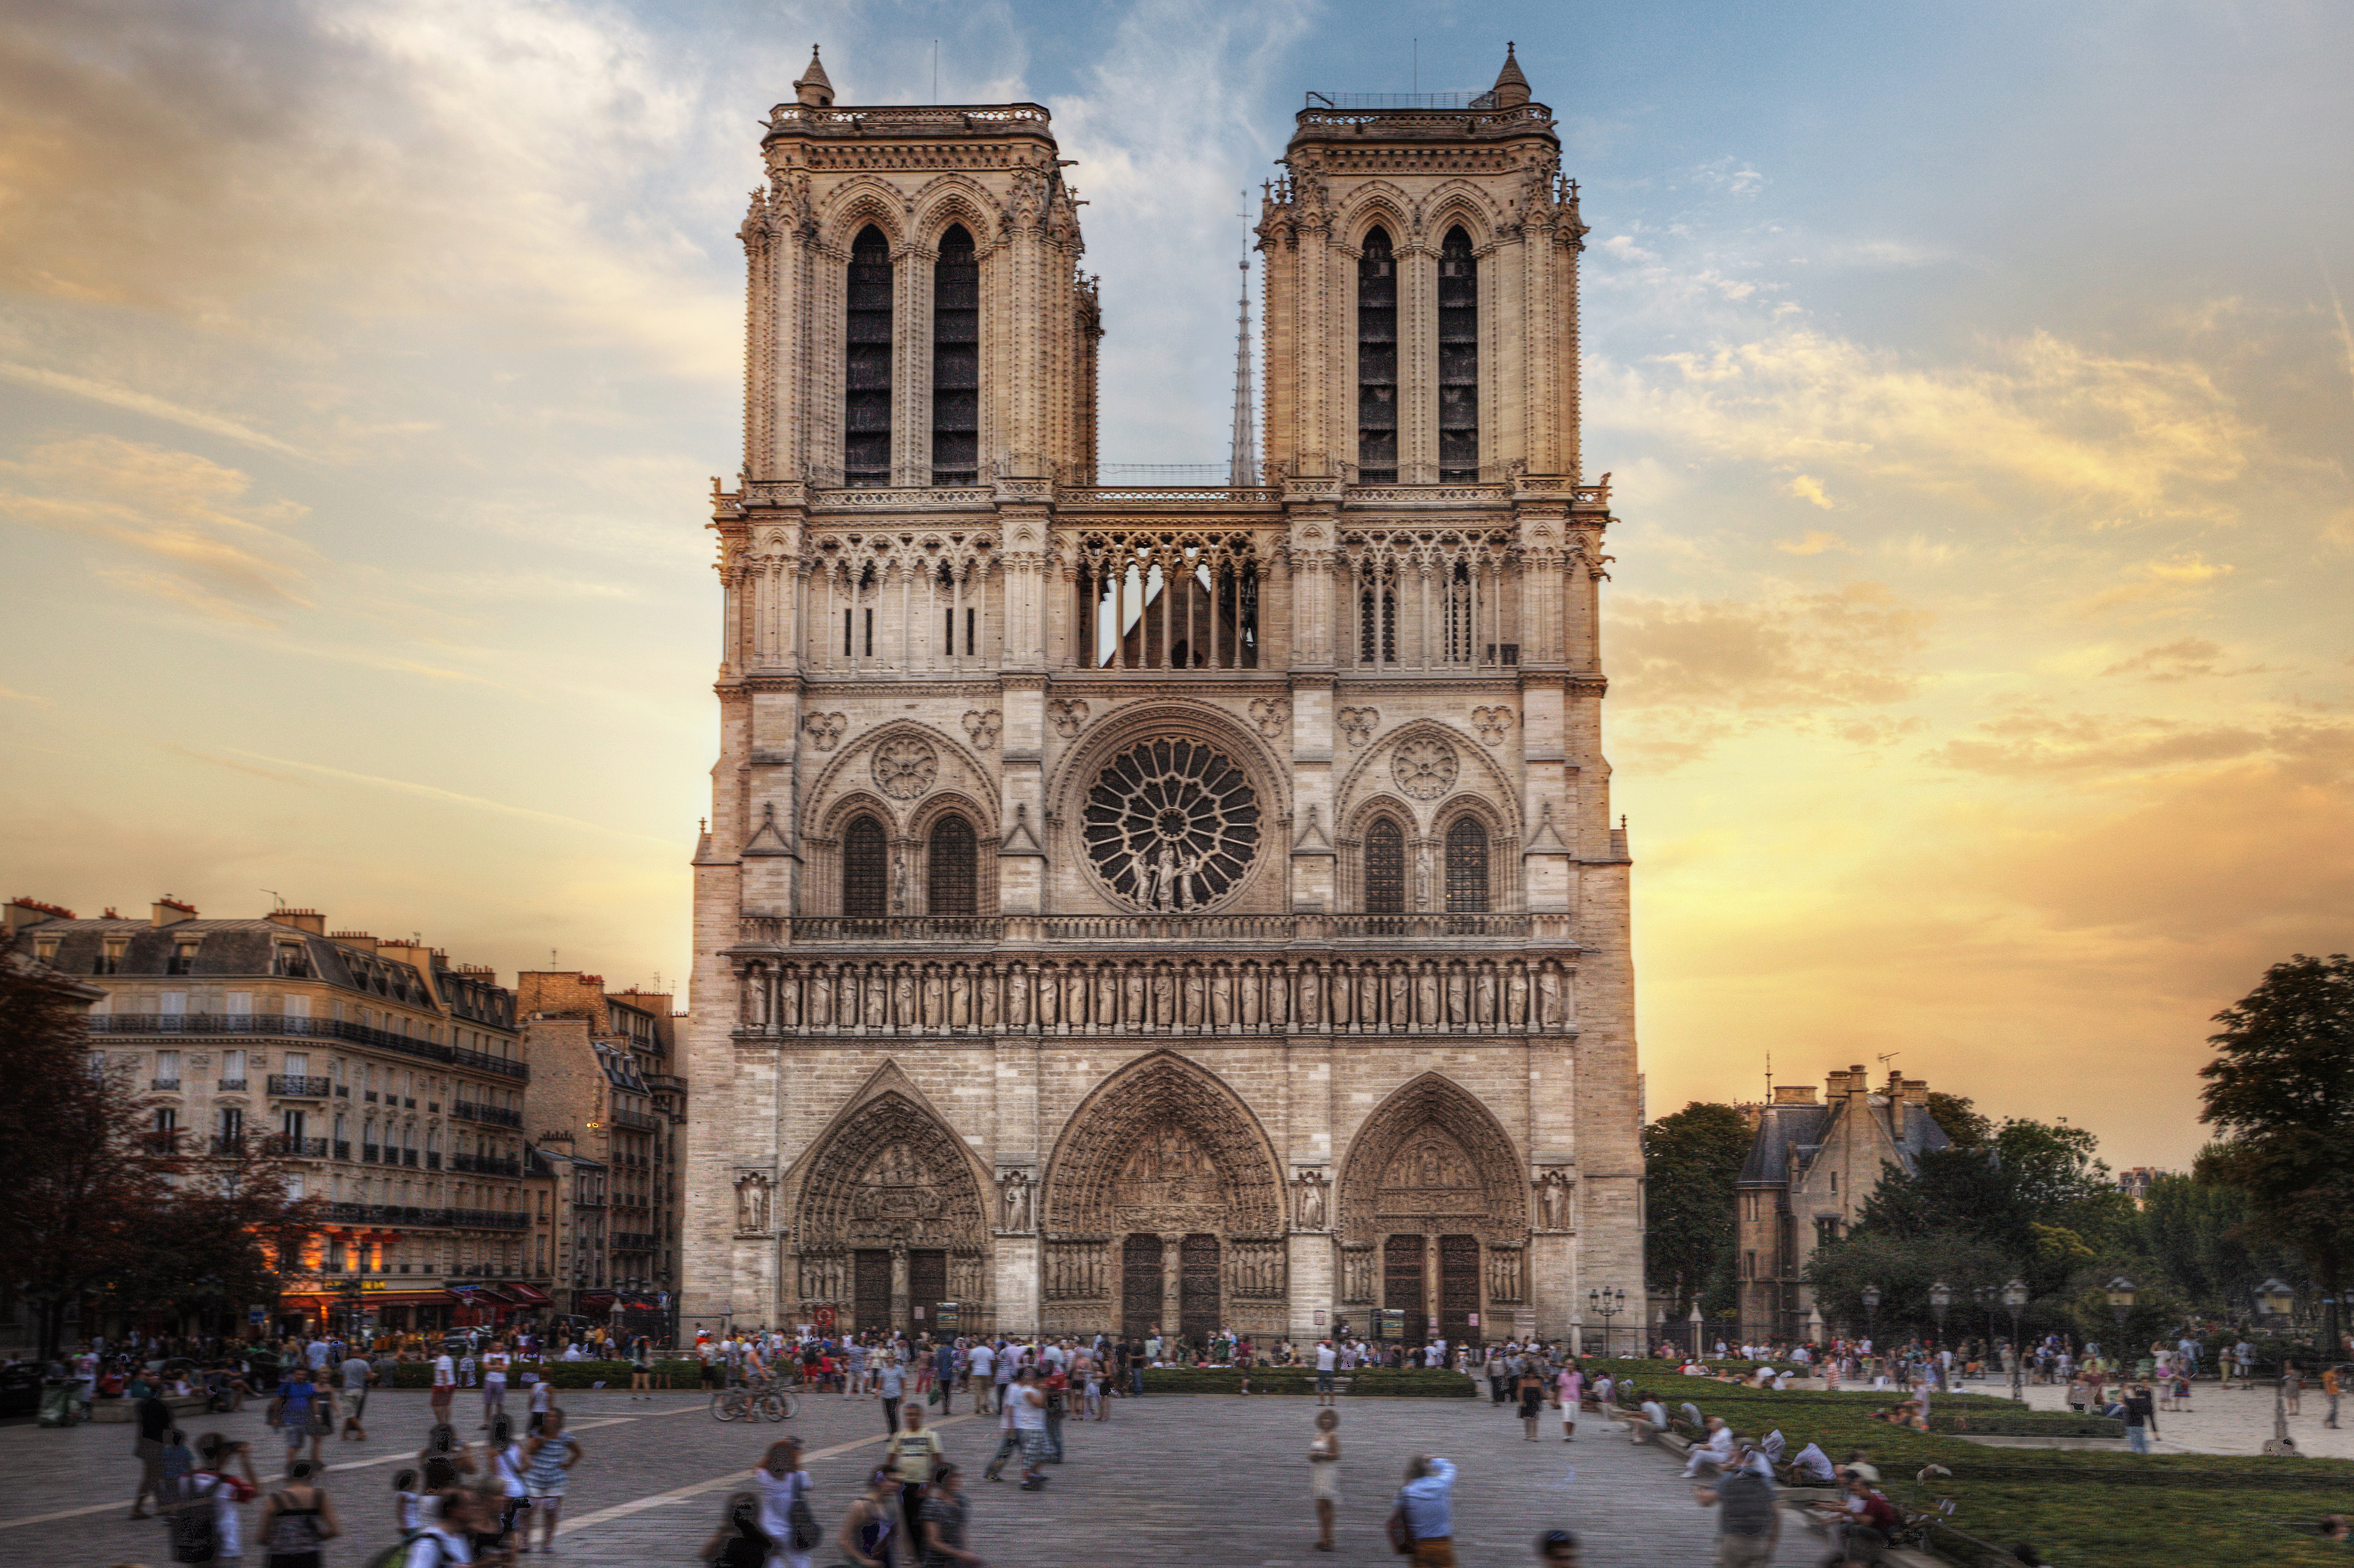 Notre Dame Cathedral before the April 15, 2019 fire that destroyed its spire and much of its roof.